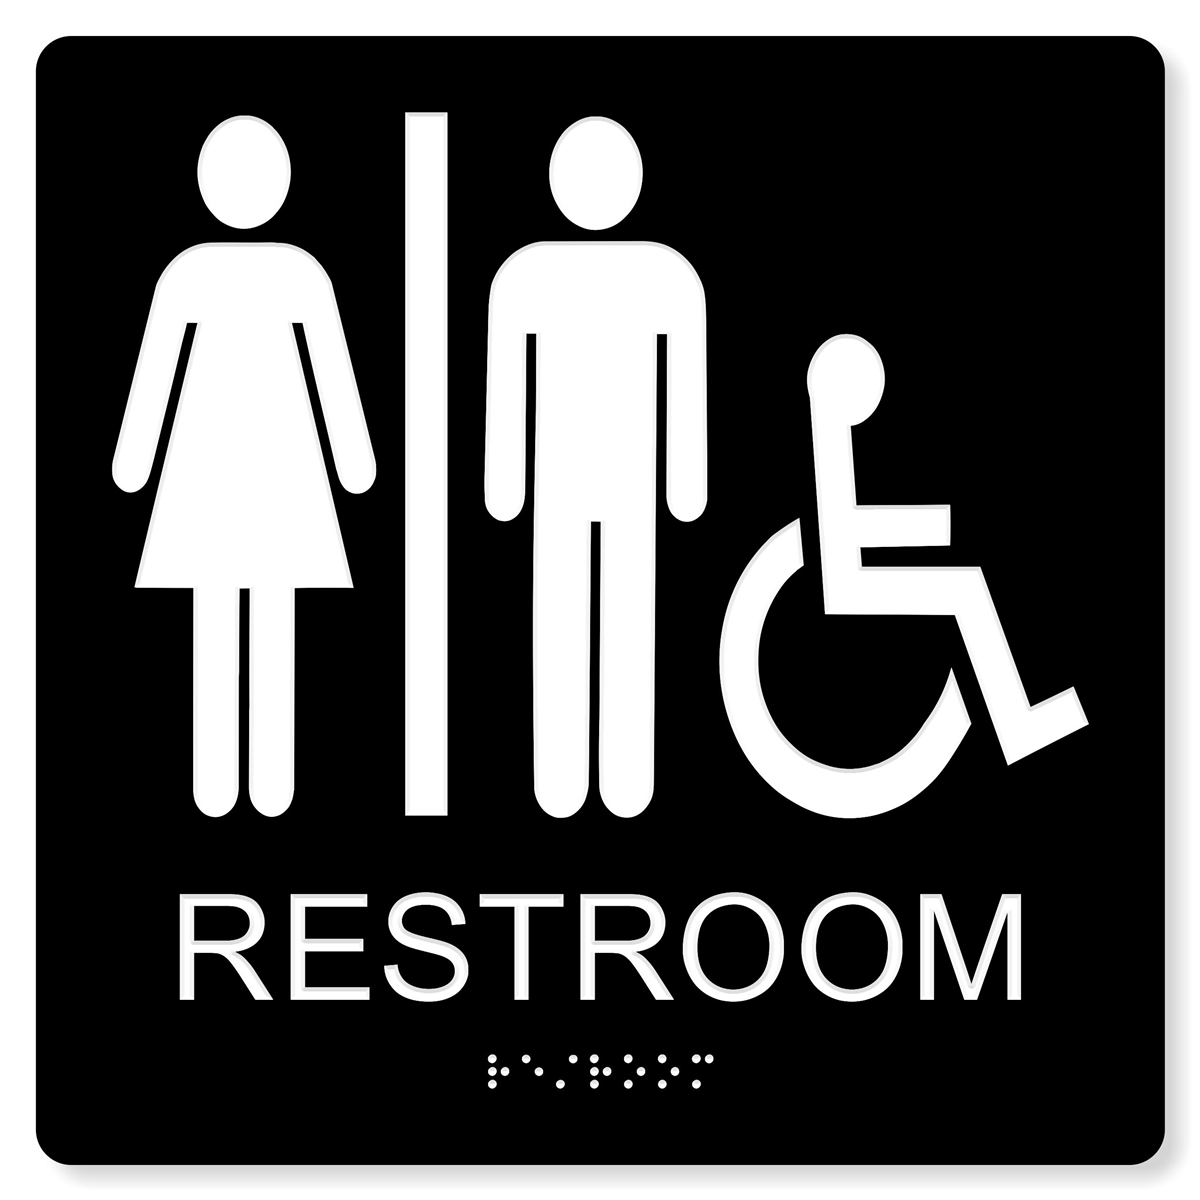 ADA Accessible Unisex Restroom Sign